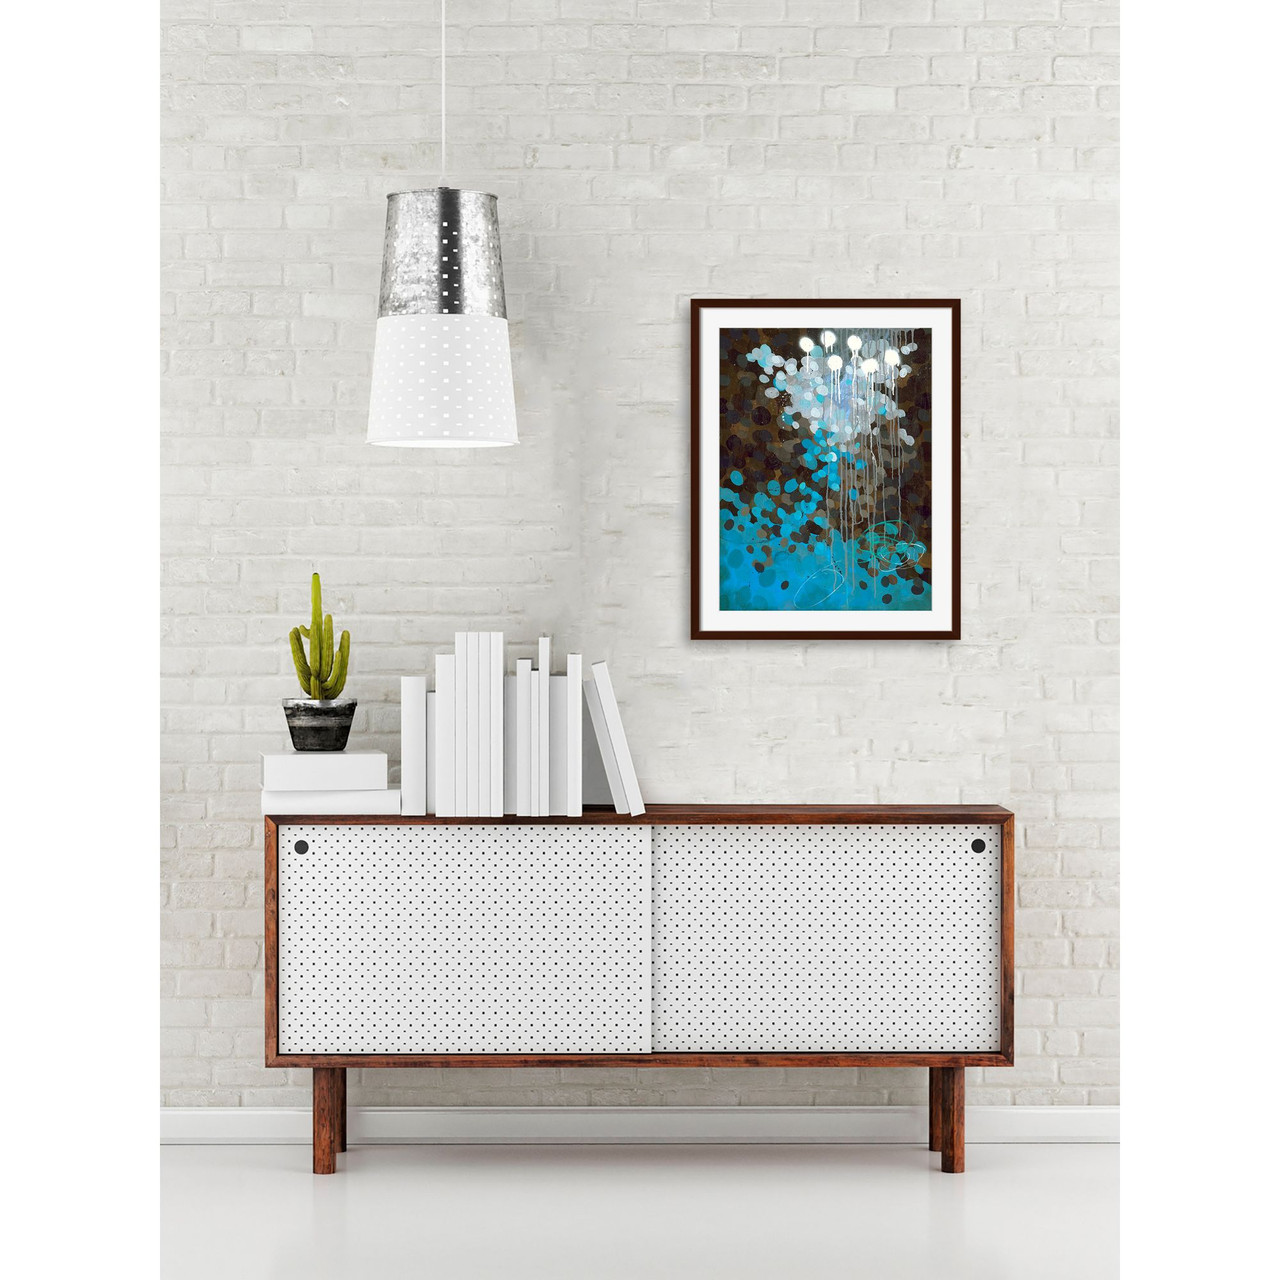 Sky Blue And Brown Contemporary Style Square Framed Wall Art Decor 18 X 18 33418048